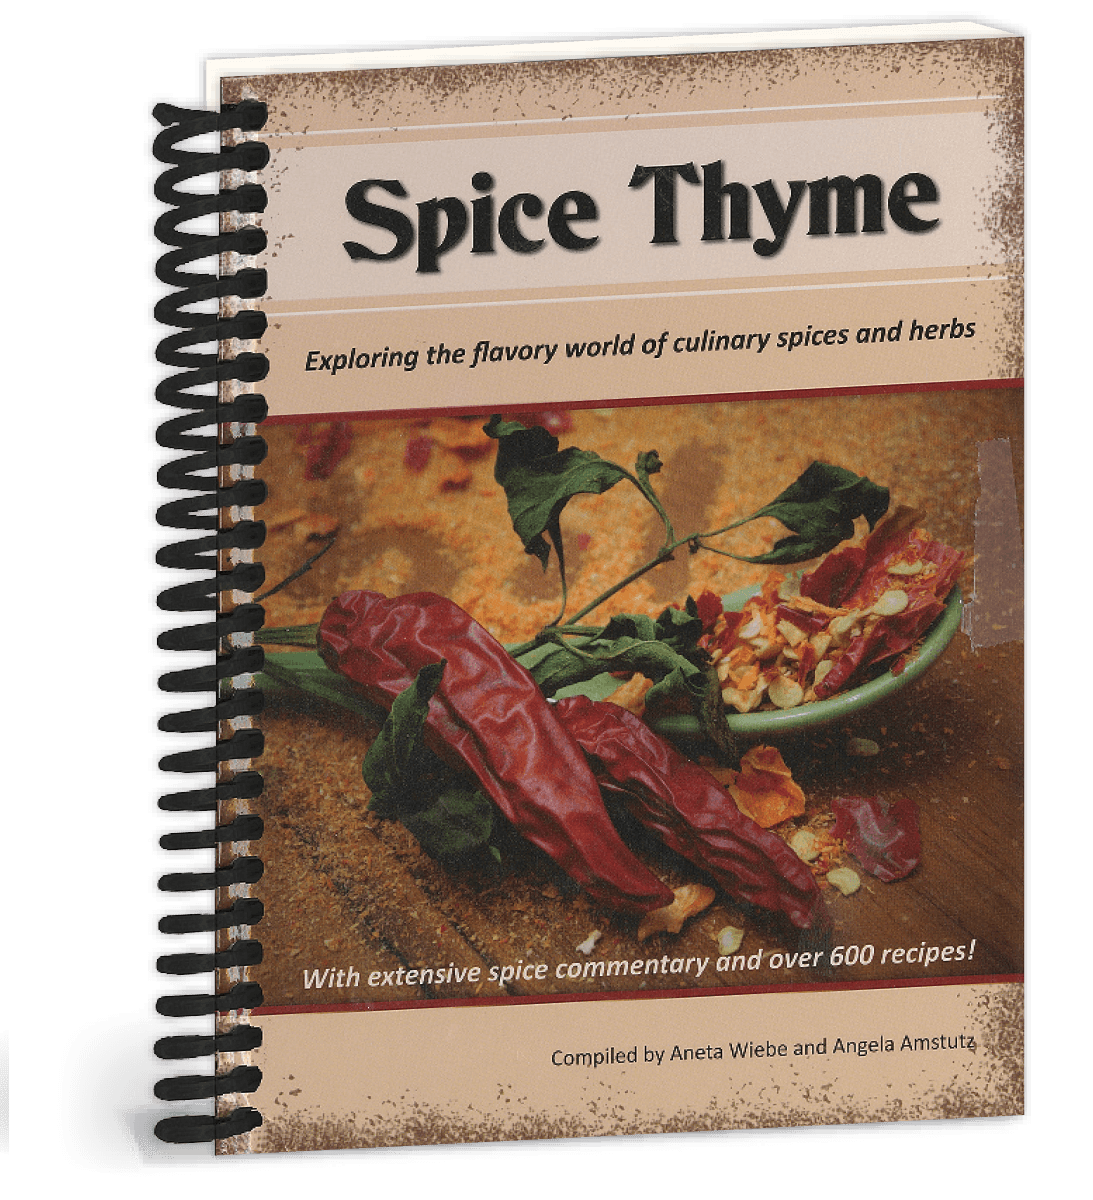 Spice Thyme